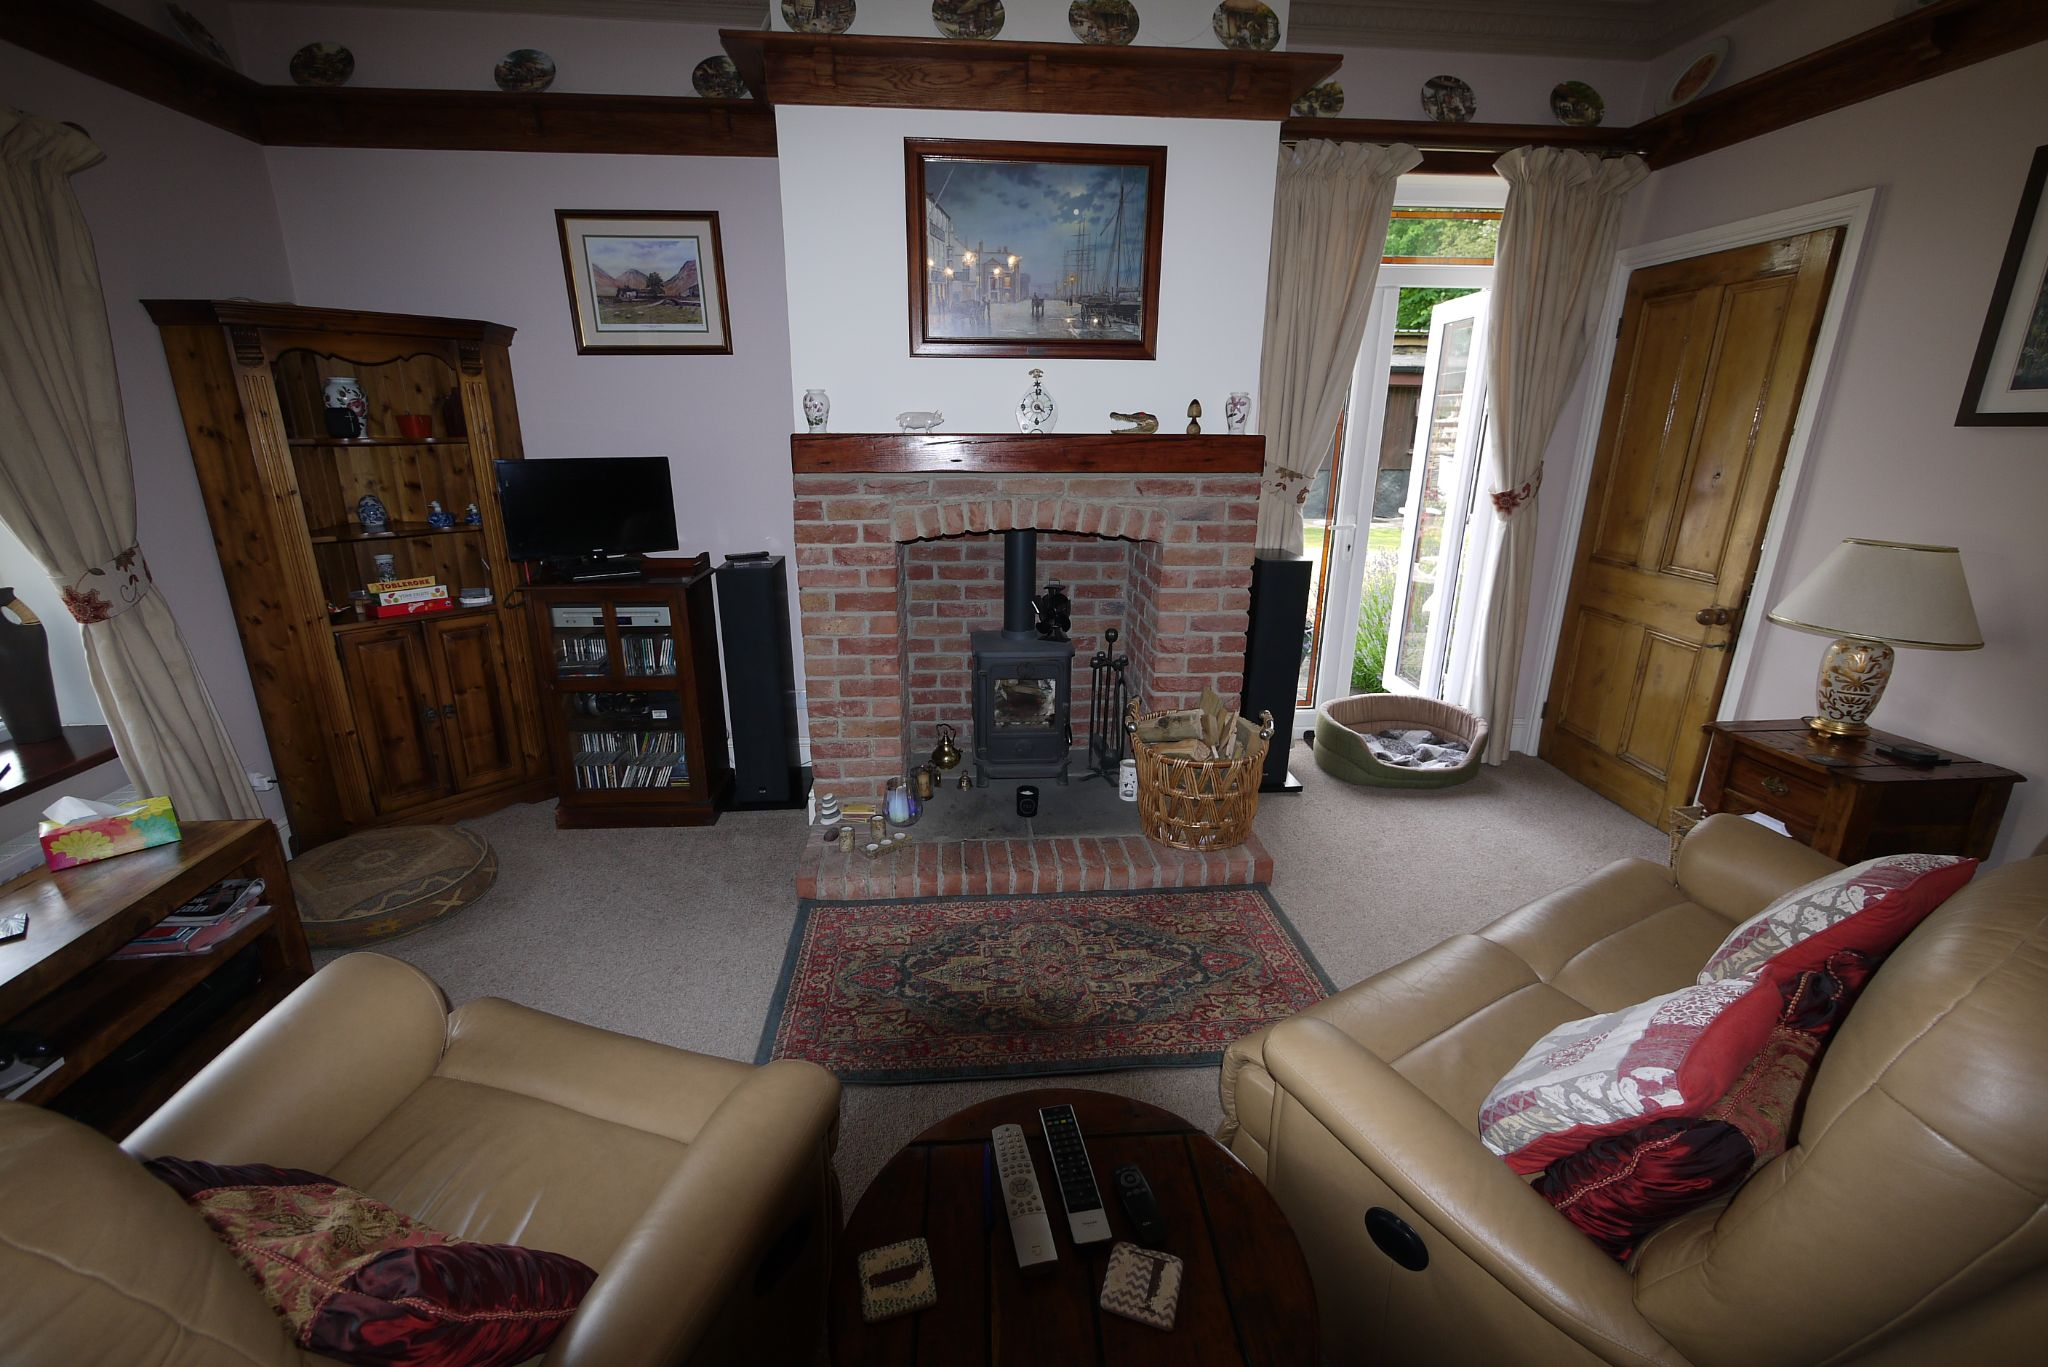 3 bedroom semi-detached house For Sale in Brighouse - Photograph 13.